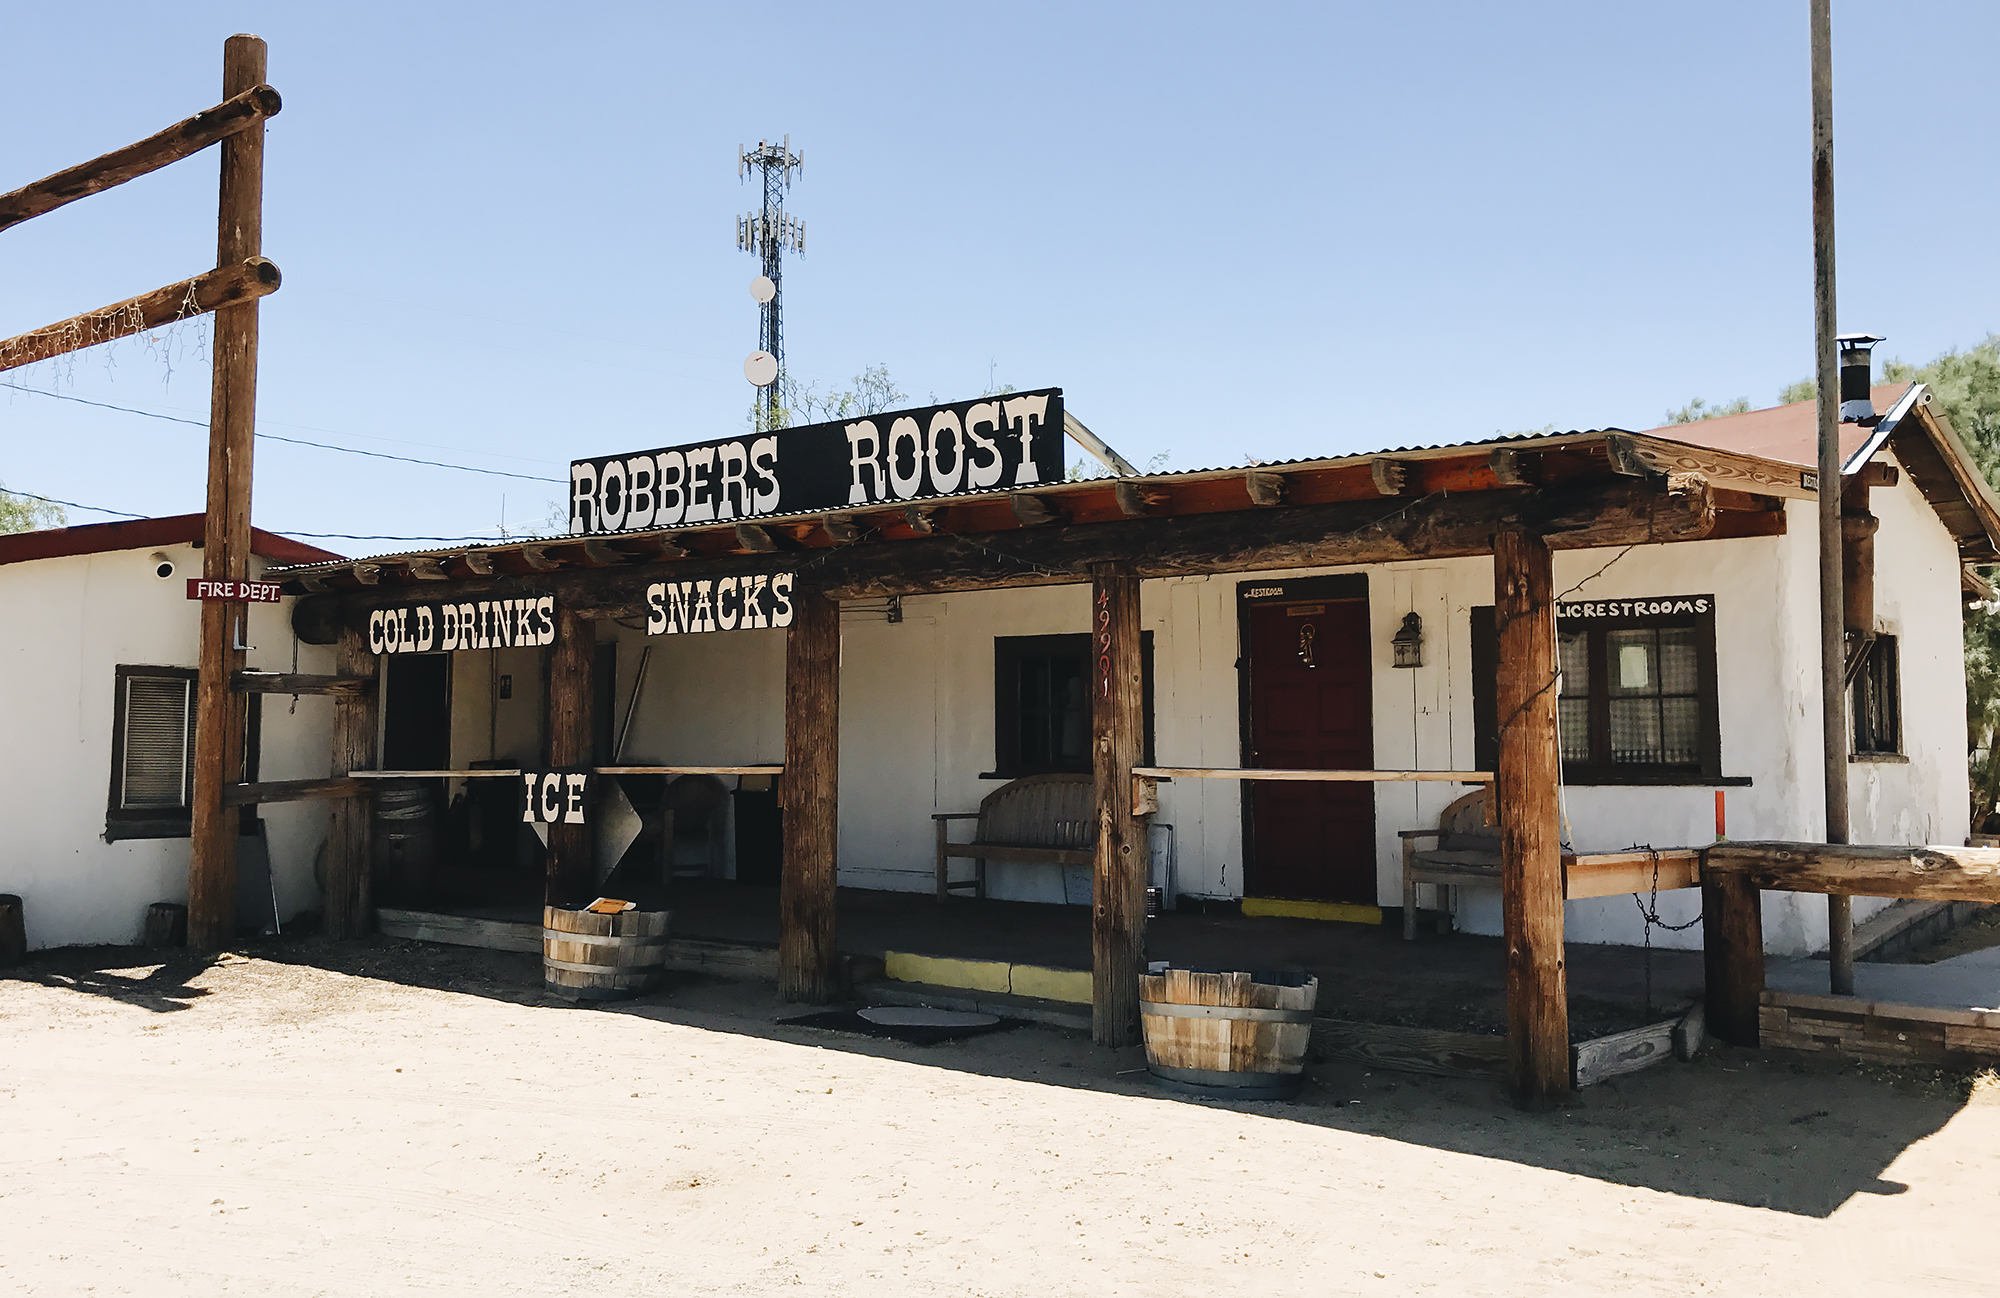 Ghost town of Robbers Roost